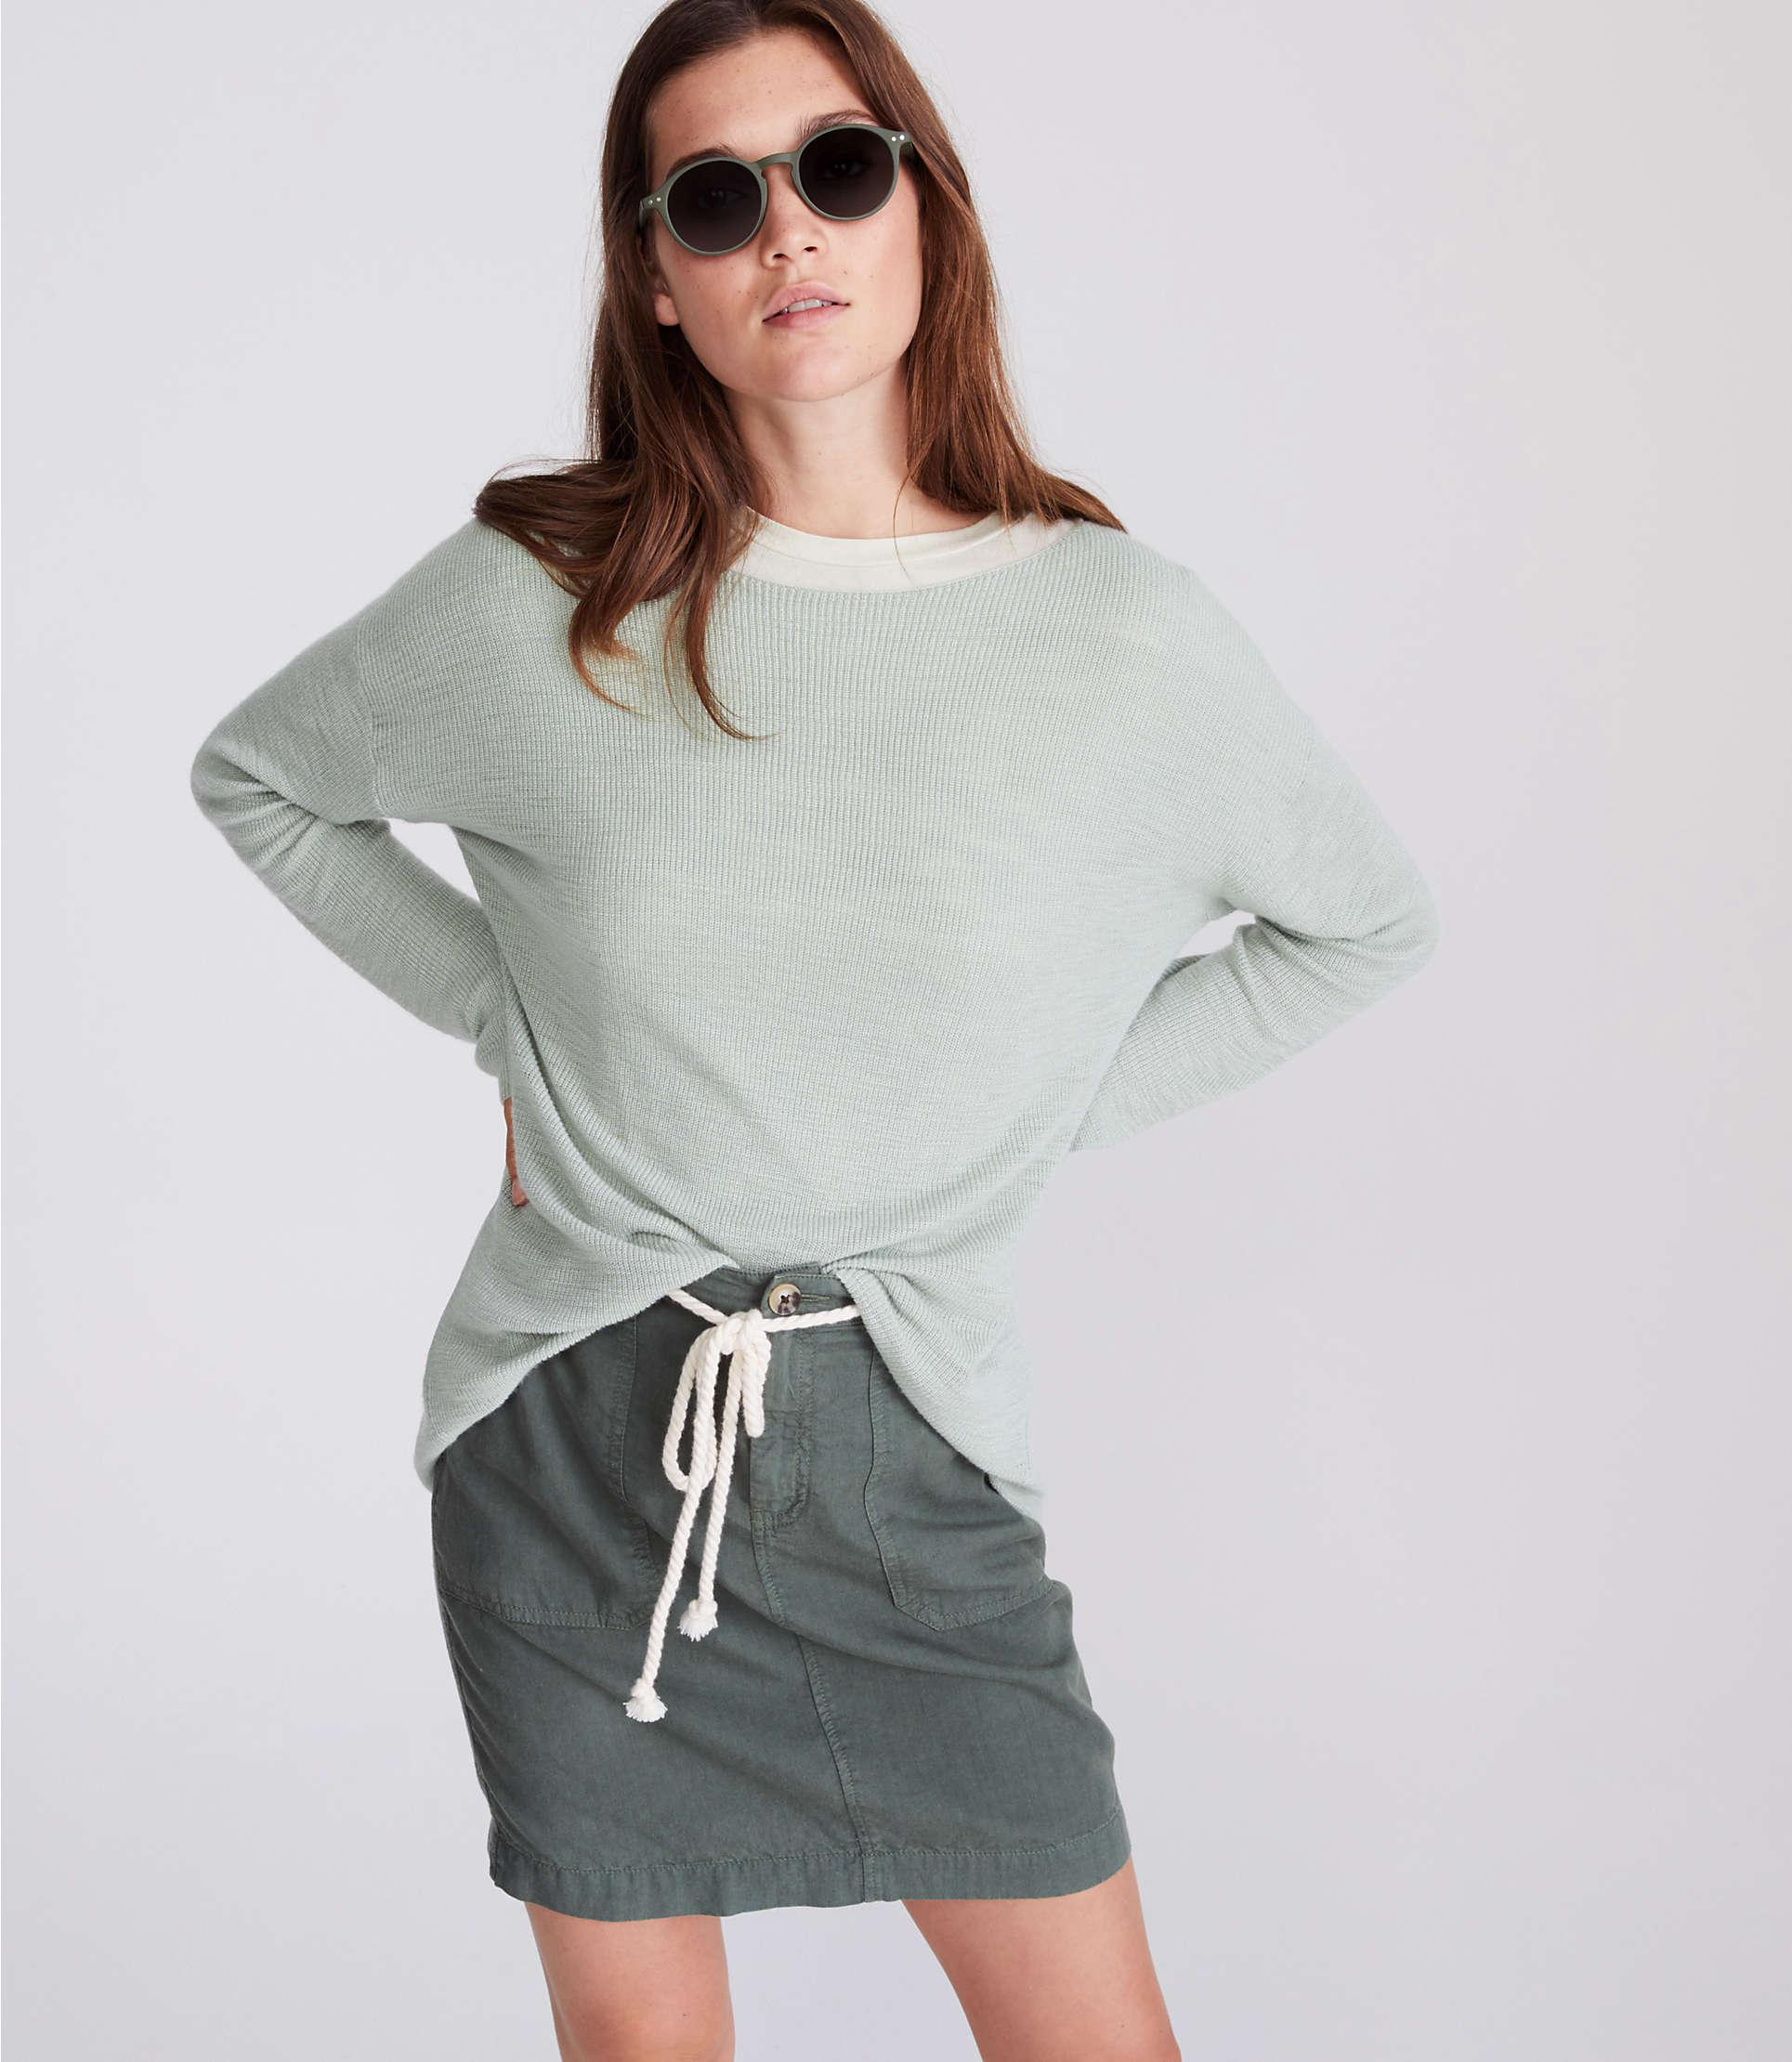 d9026a56fd5 Lyst - LOFT Lou   Grey Ribbed Tunic Sweater in Gray